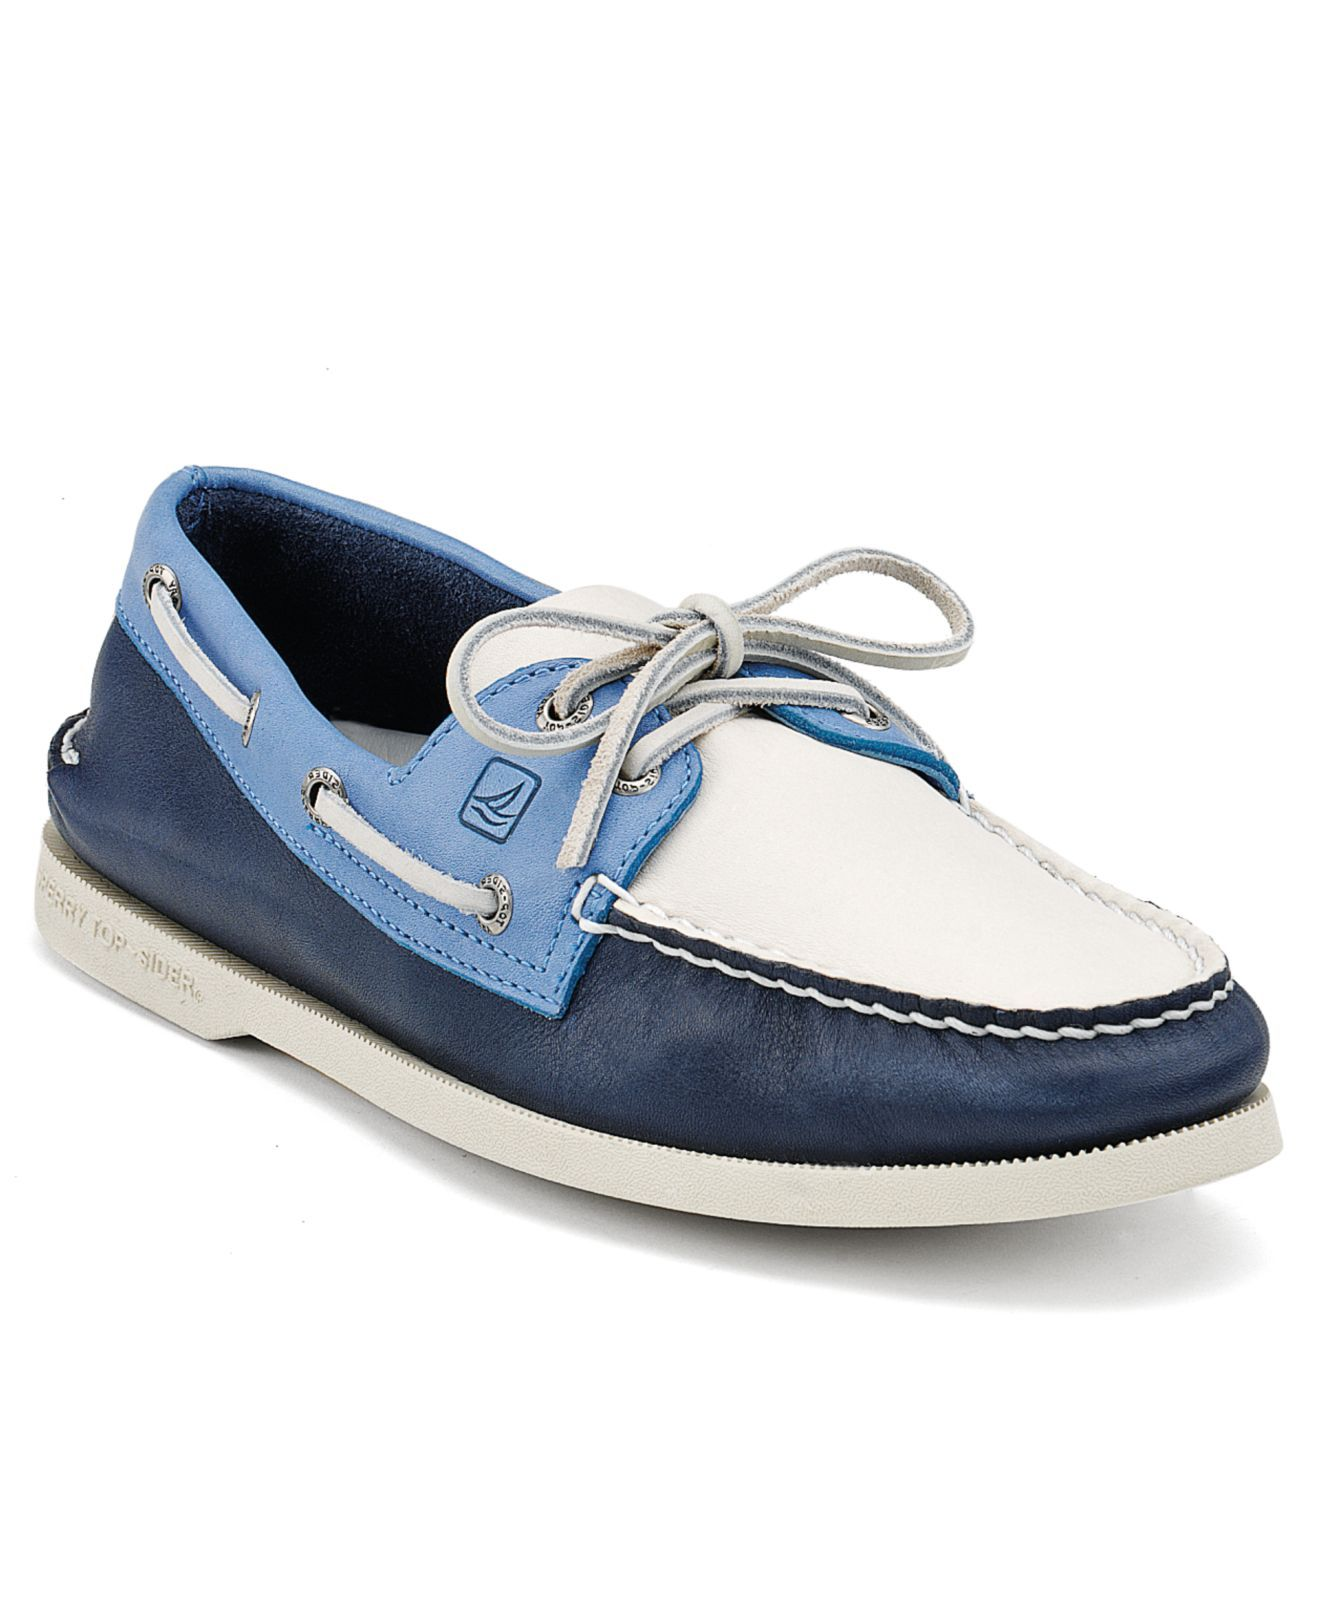 17 Best images about Boat shoes mens on Pinterest | Love boat, Key ...